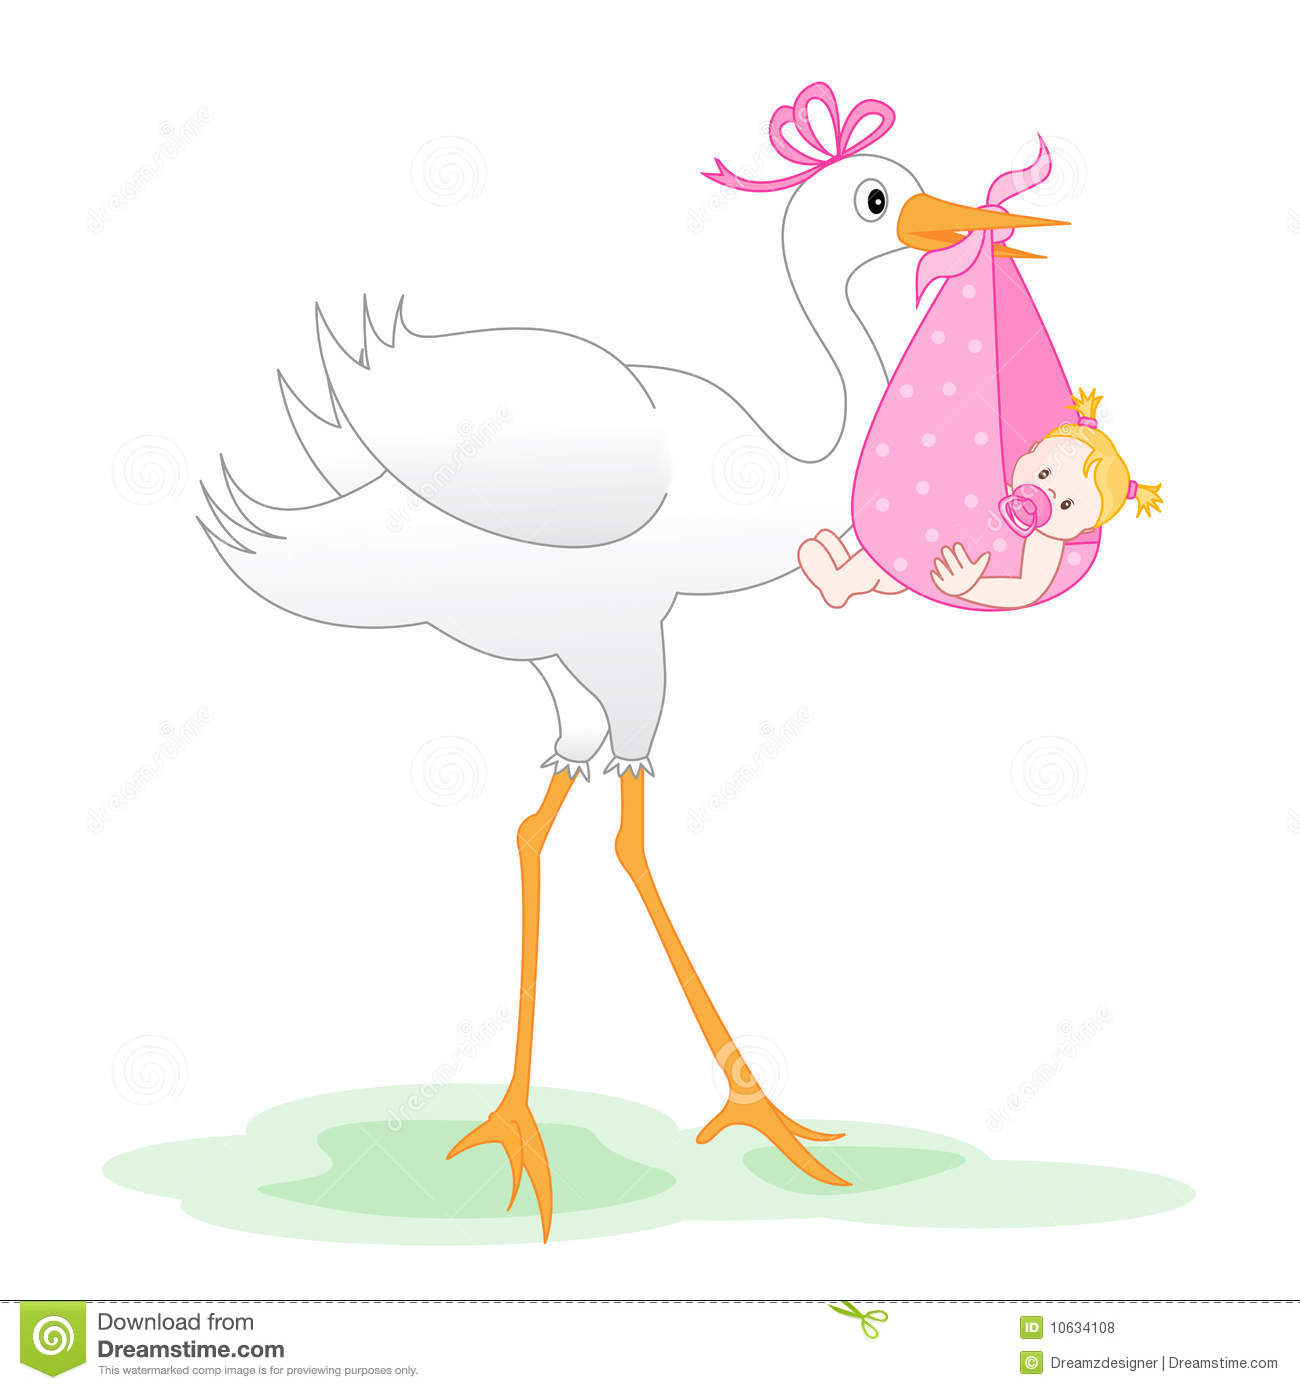 Baby girl stork clipart svg library stock Baby girl stork clipart - ClipartFest svg library stock